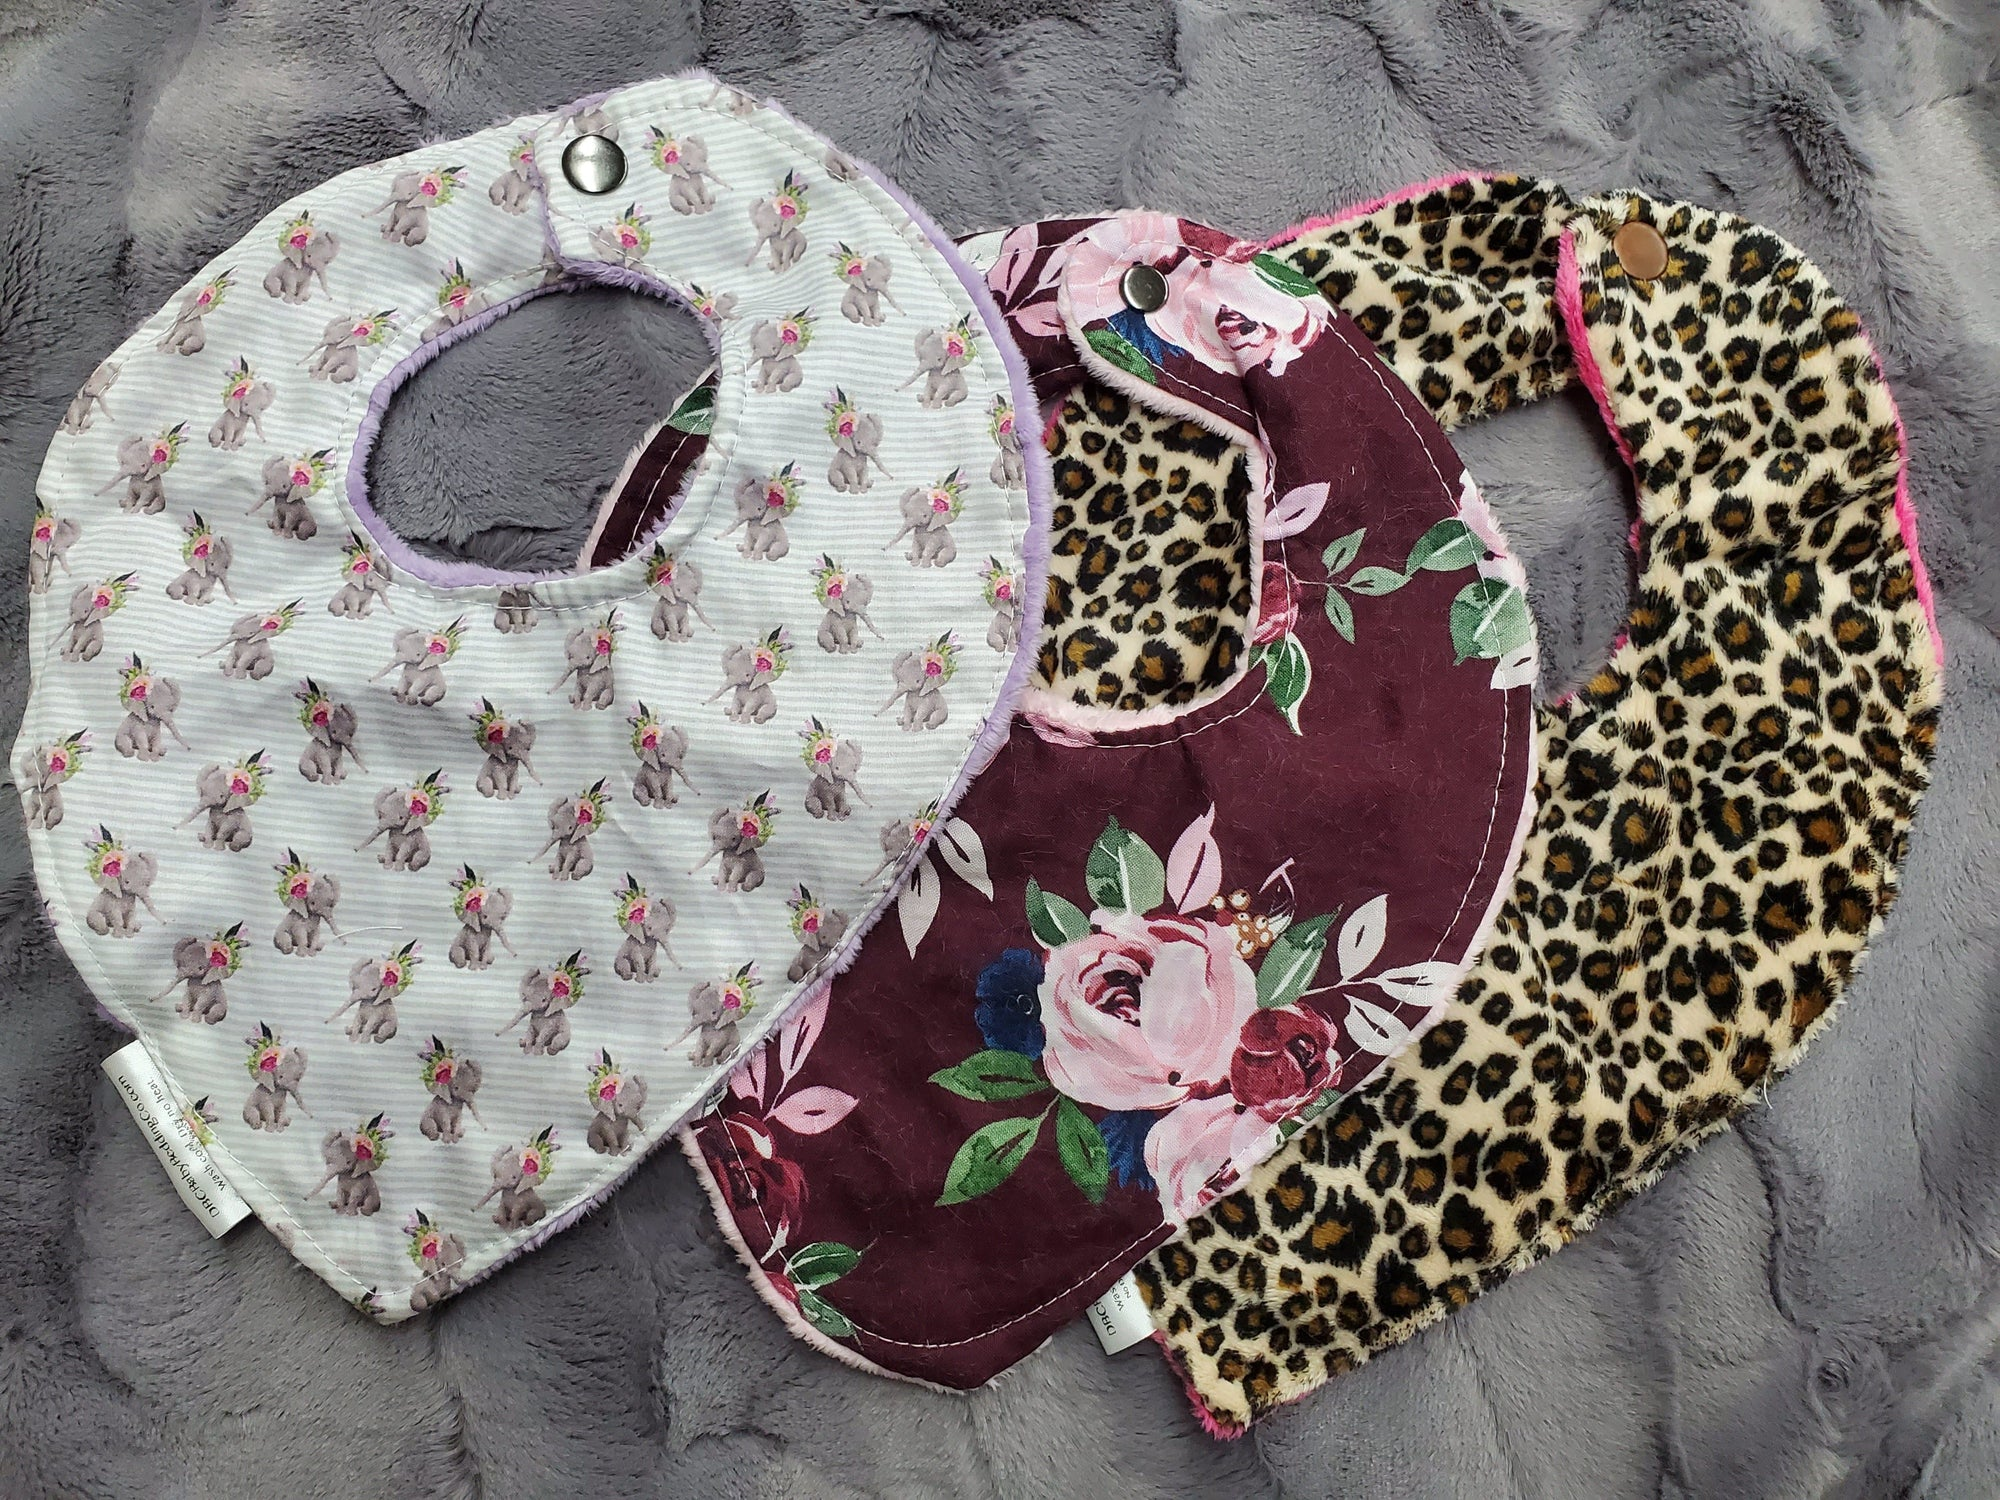 LIVE Specials - Bib- 3 pc set Baby Bibs - Elephants, Maroon Flowers, Cheetah Minky